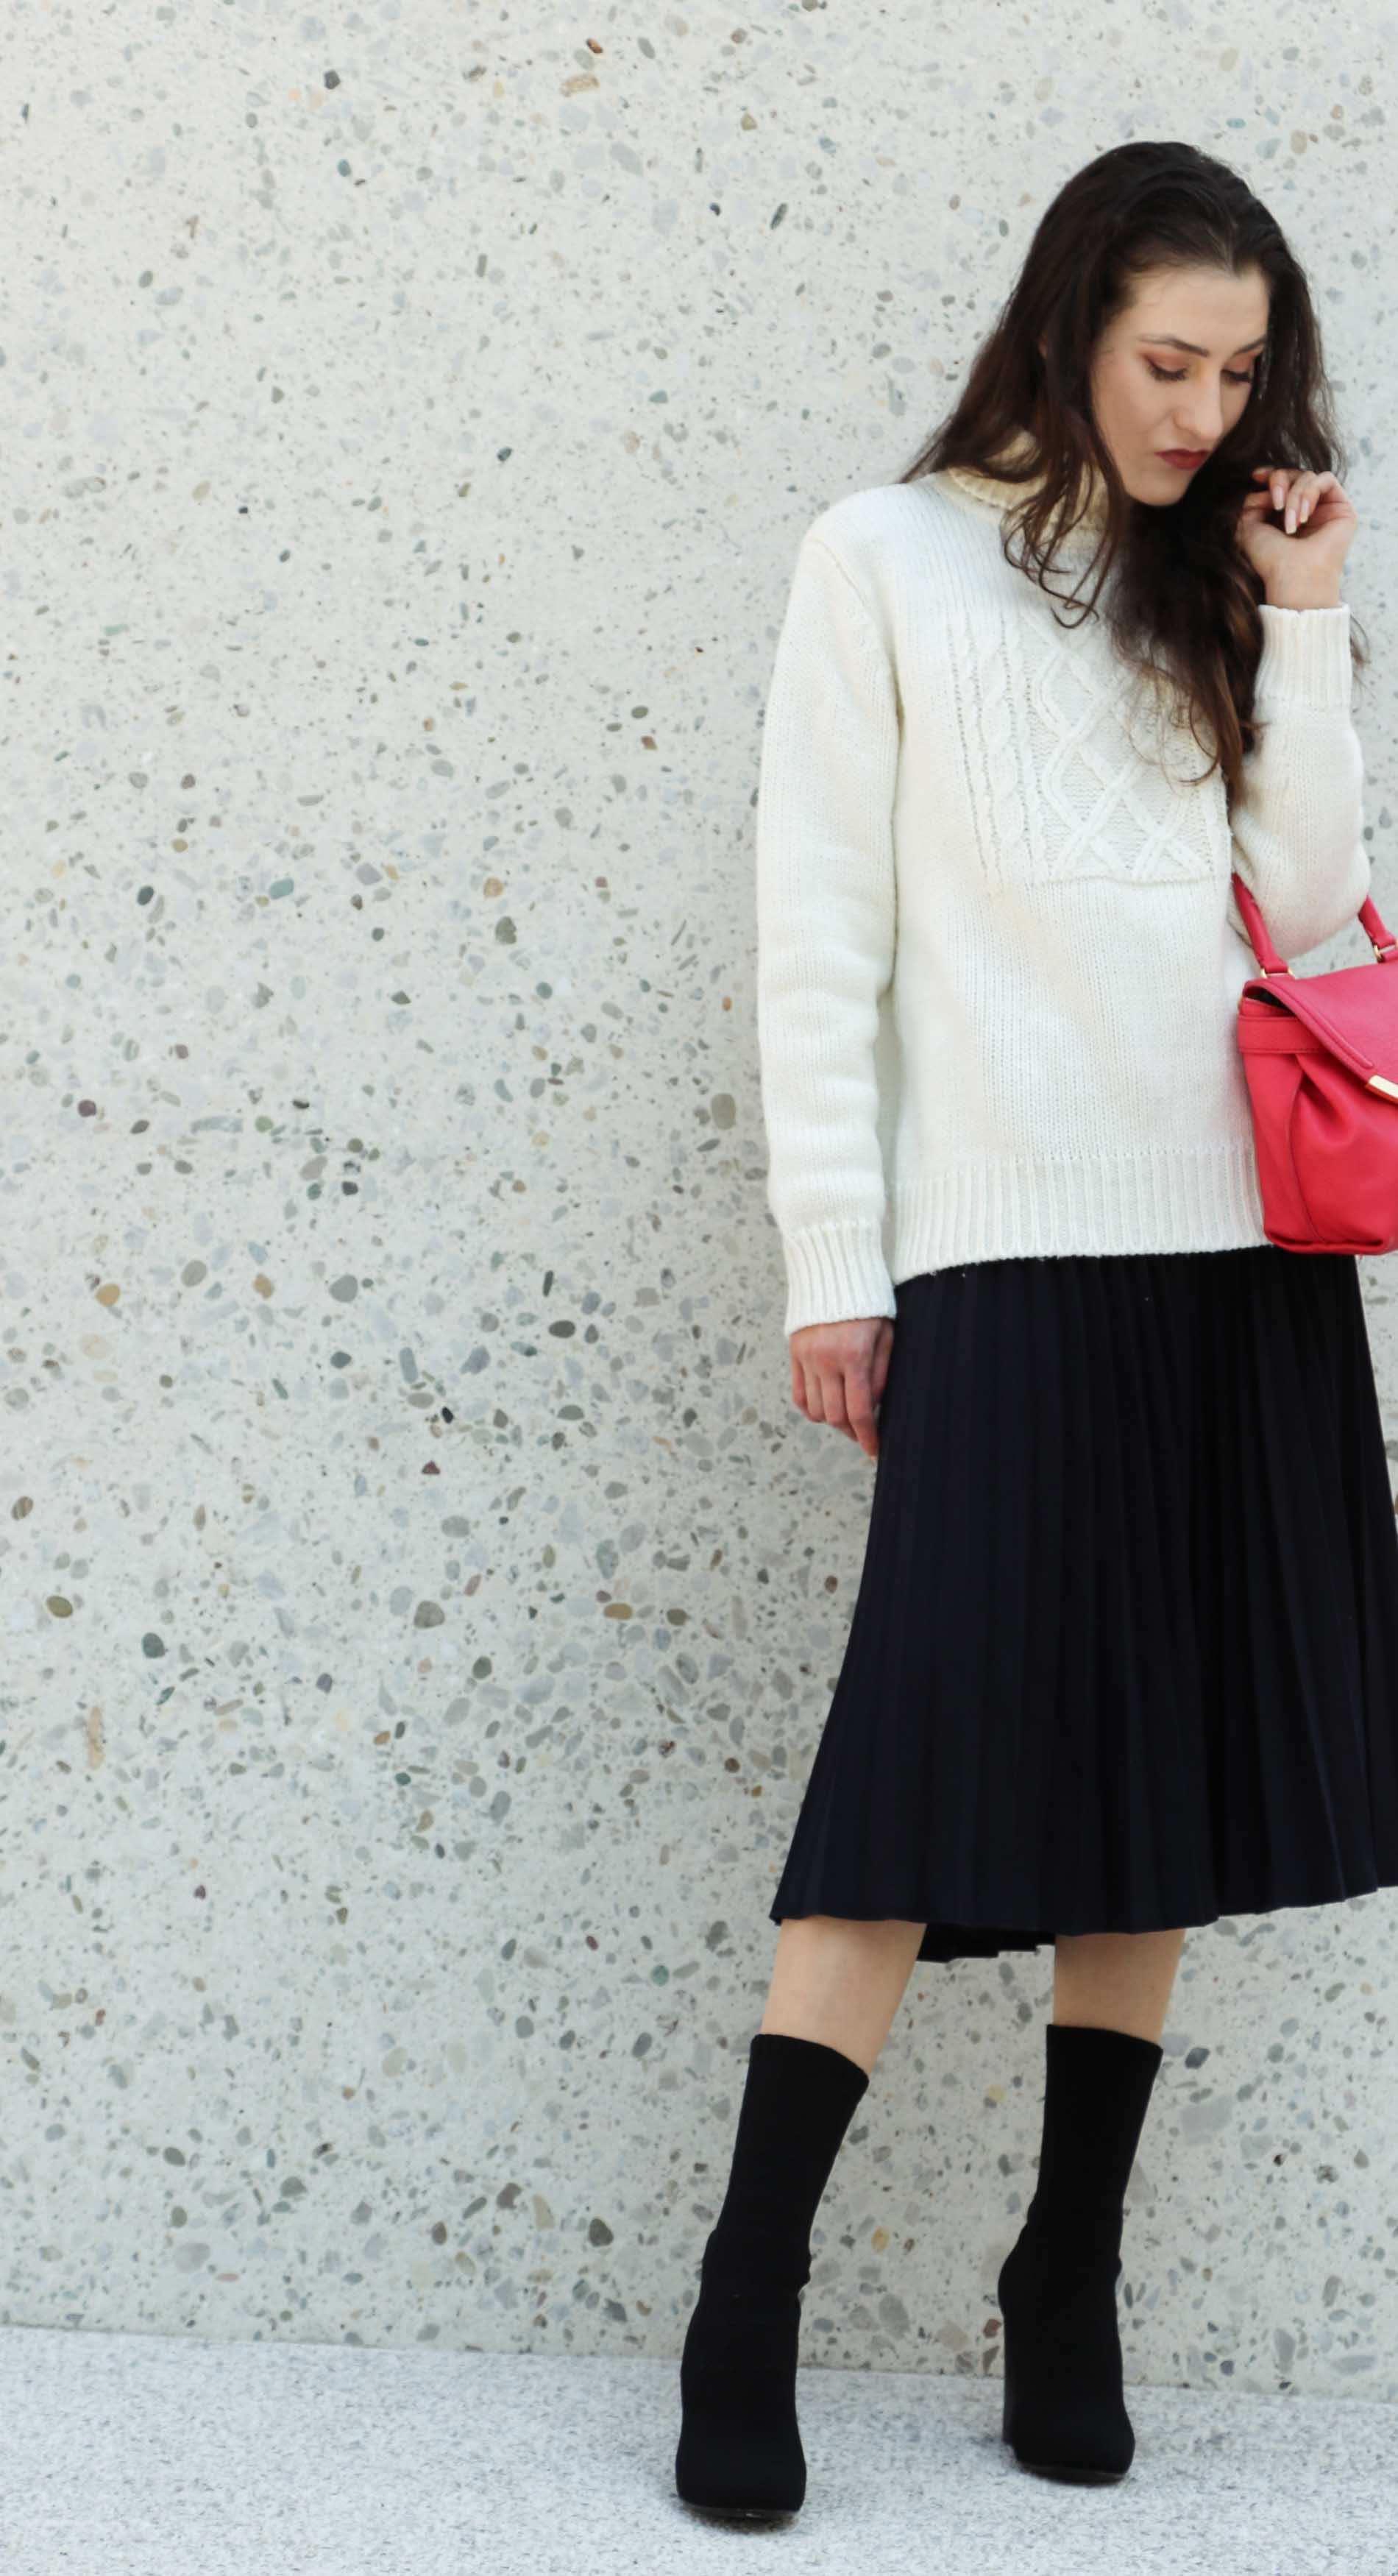 Fashion Blogger Veronika Lipar of Brunette from Wall Street wearing white oversized cable knit sweater, black midi skirt with pleats, pink top handle bag from See by Chloe and black sock boots from Elena Iachi